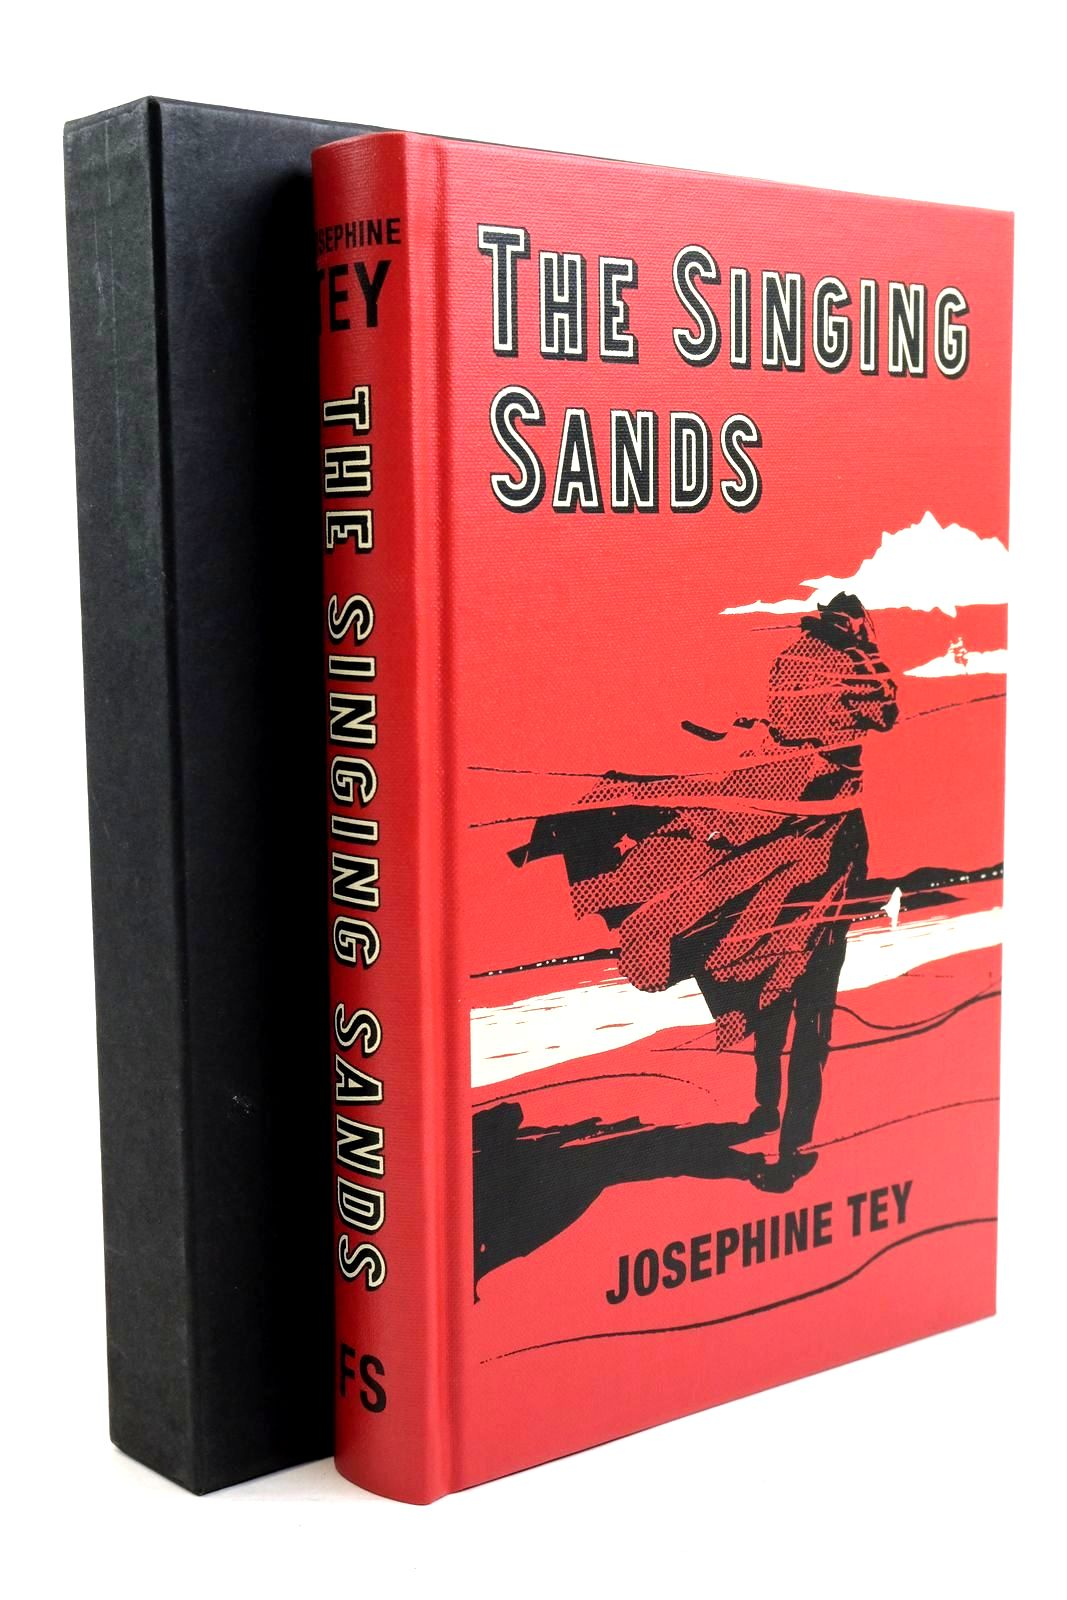 Photo of THE SINGING SANDS written by Tey, Josephine McDermid, Val illustrated by Smith, Mark published by Folio Society (STOCK CODE: 1320760)  for sale by Stella & Rose's Books